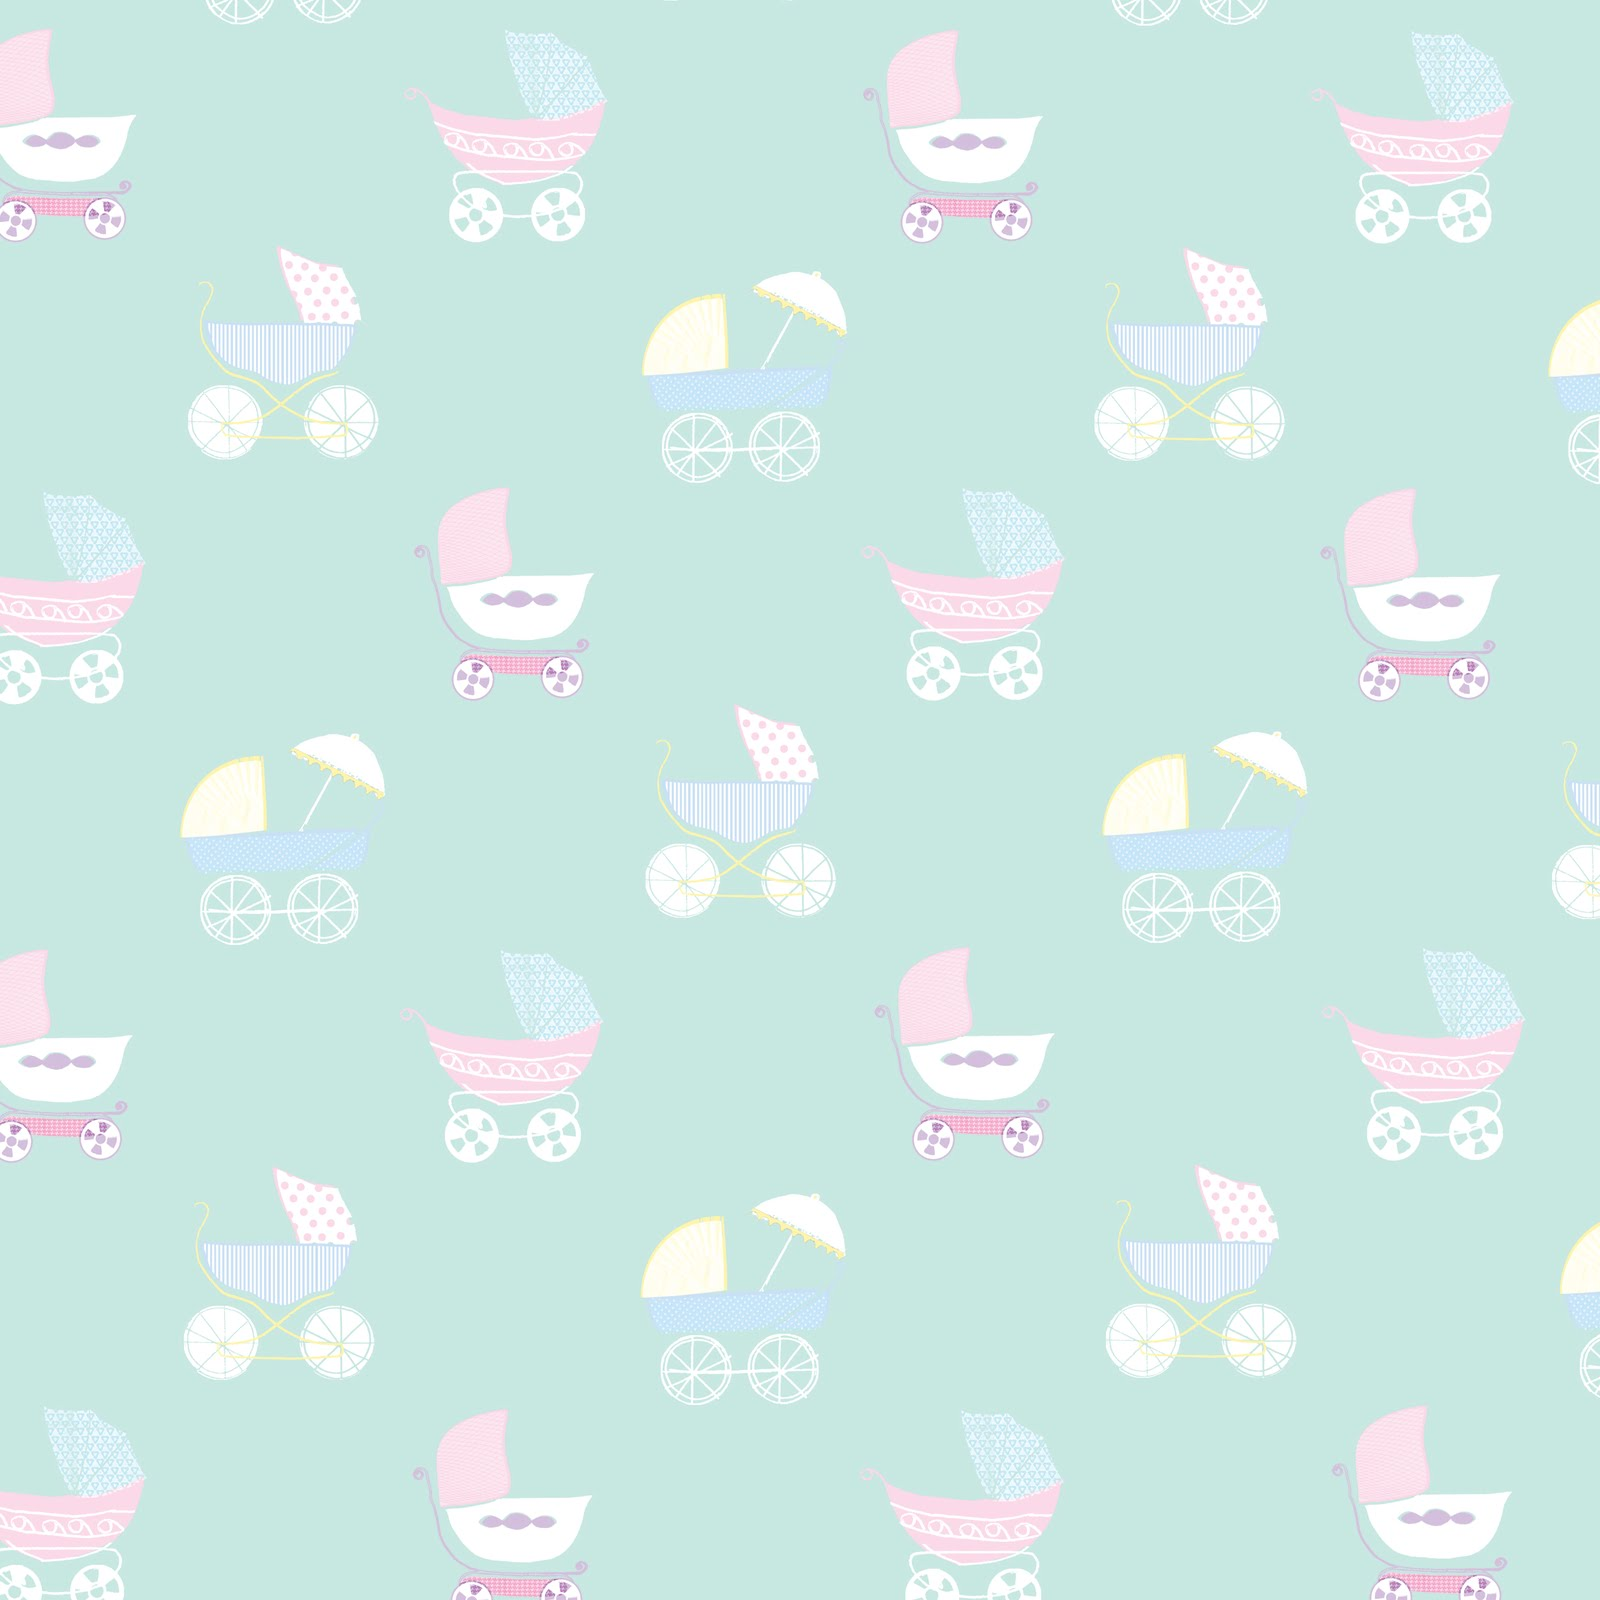 Kate Webster Illustration: Wrapping paper